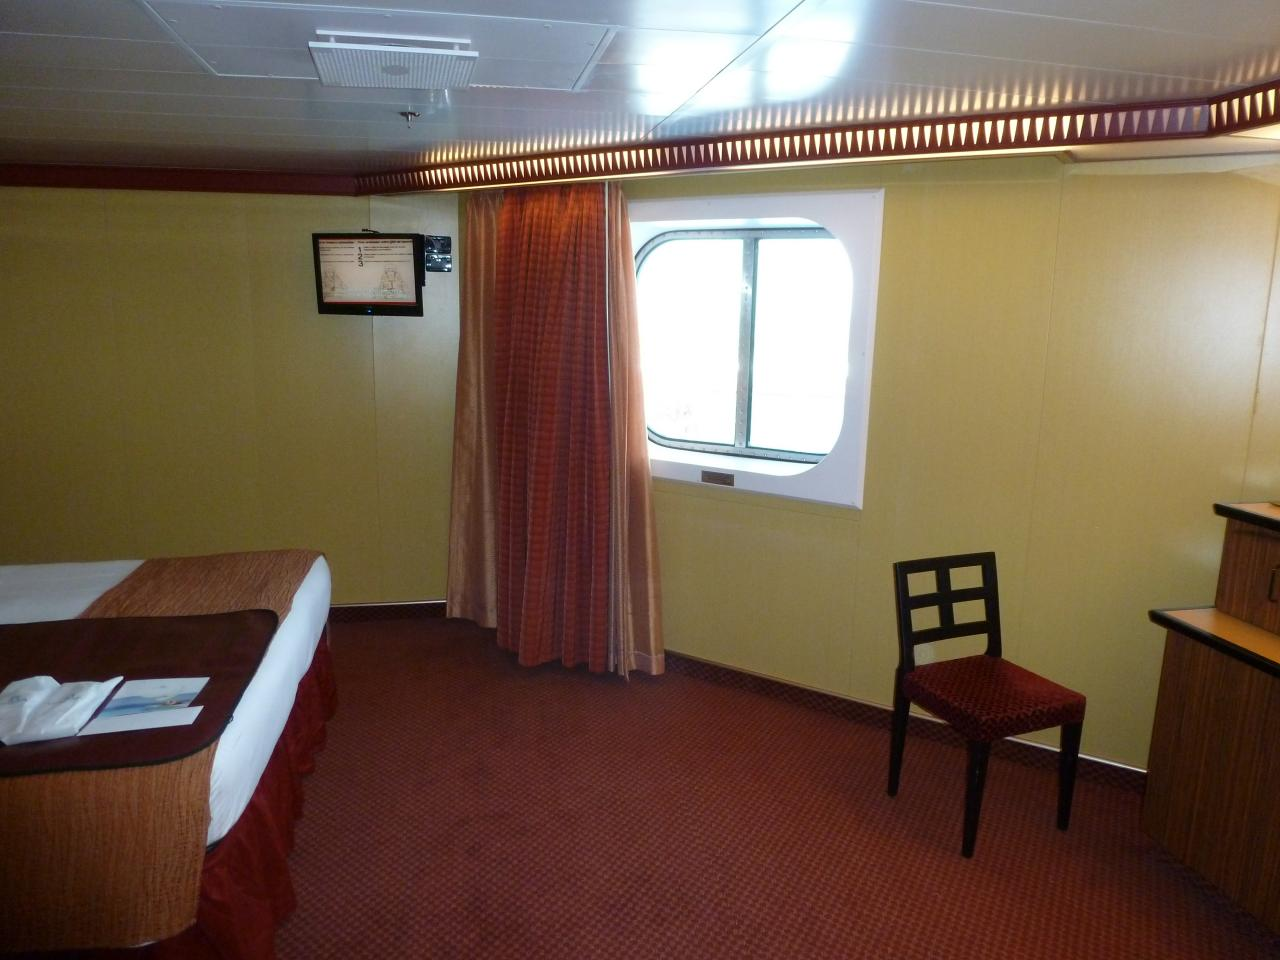 Carnival Dream Cruise Review For Cabin 11204